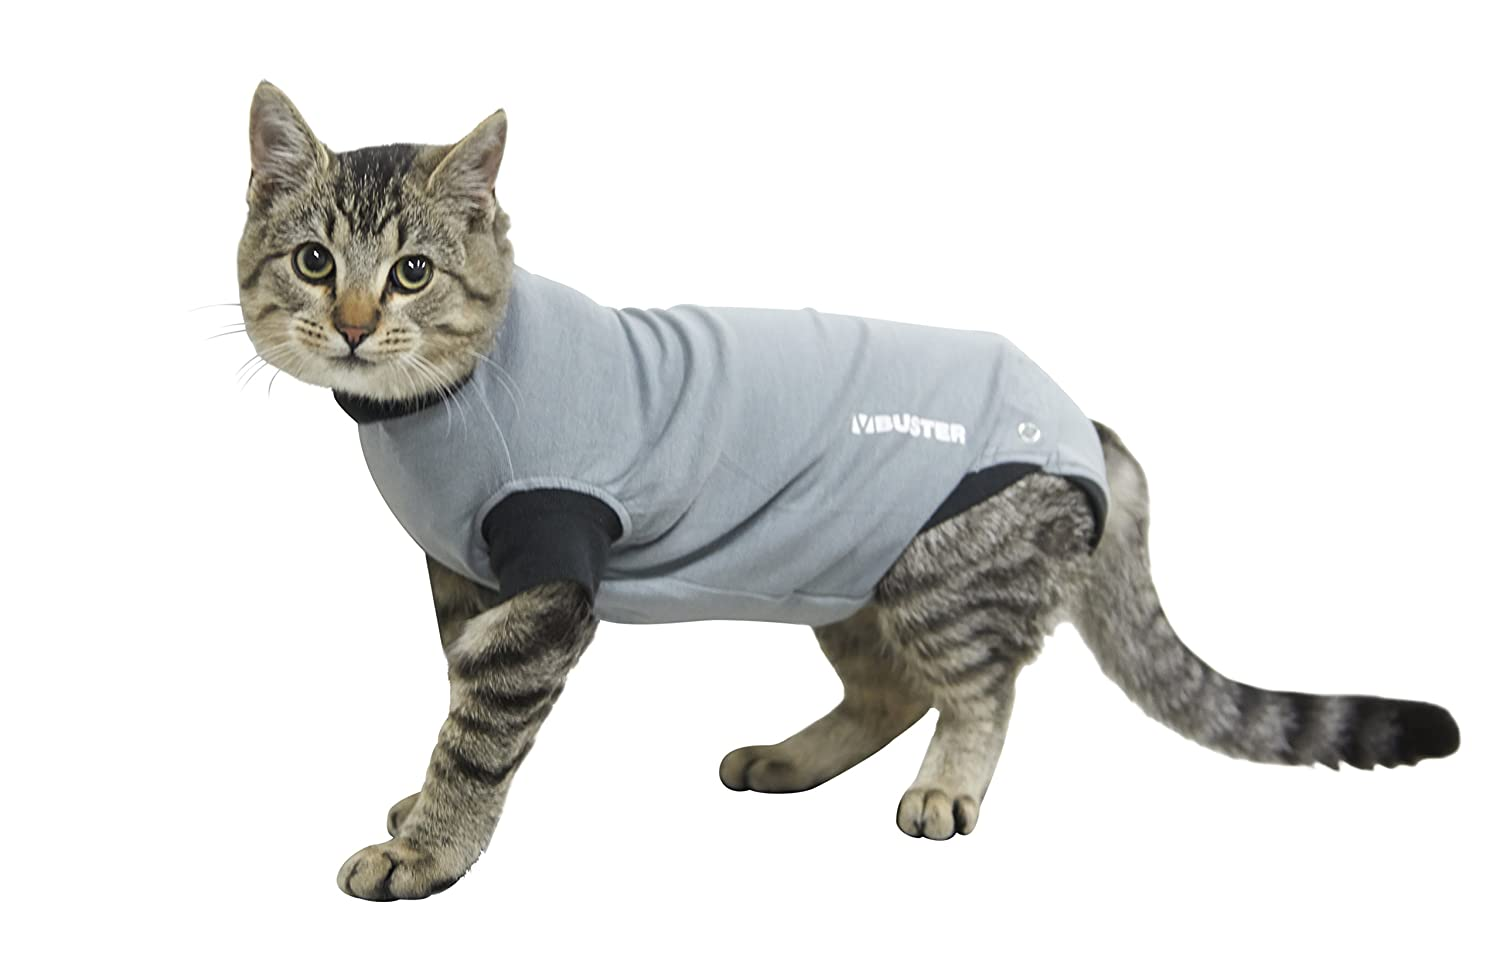 Buster Body Suit Easygo for Cats, 44 cm, Small KR273963